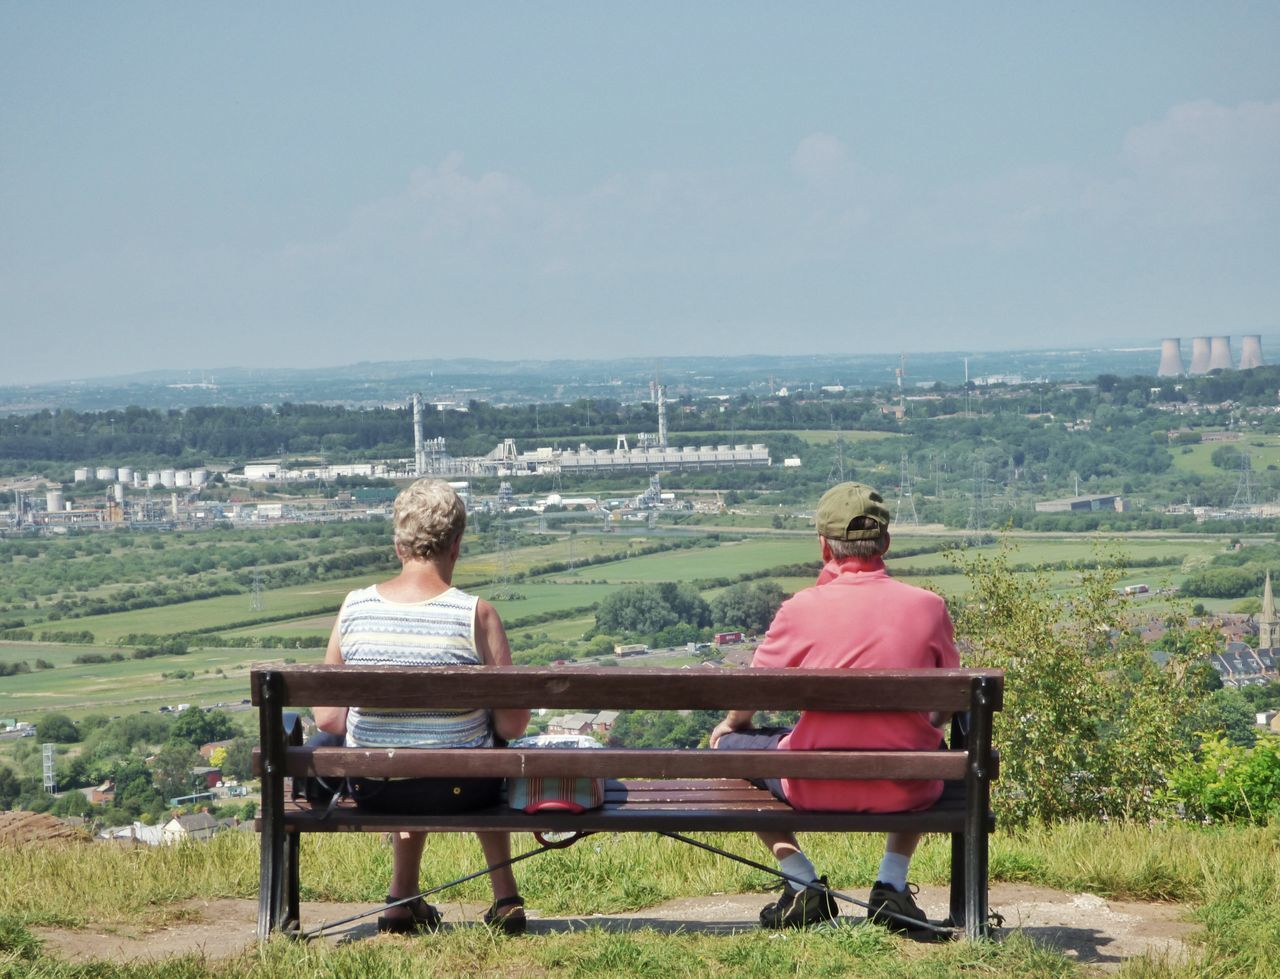 My birthday walk with my parents // Amazing View Beautiful Bench Cheshire Cheshirelife Clear Sky Couple England EyeEm Best Shots Eyeem Market Frodsham ICI Image Industrial Mike Whitby Mum And Dad Photo Photography Relaxation Sitting Sitting Stock Image Stock Photo Taking Photos View